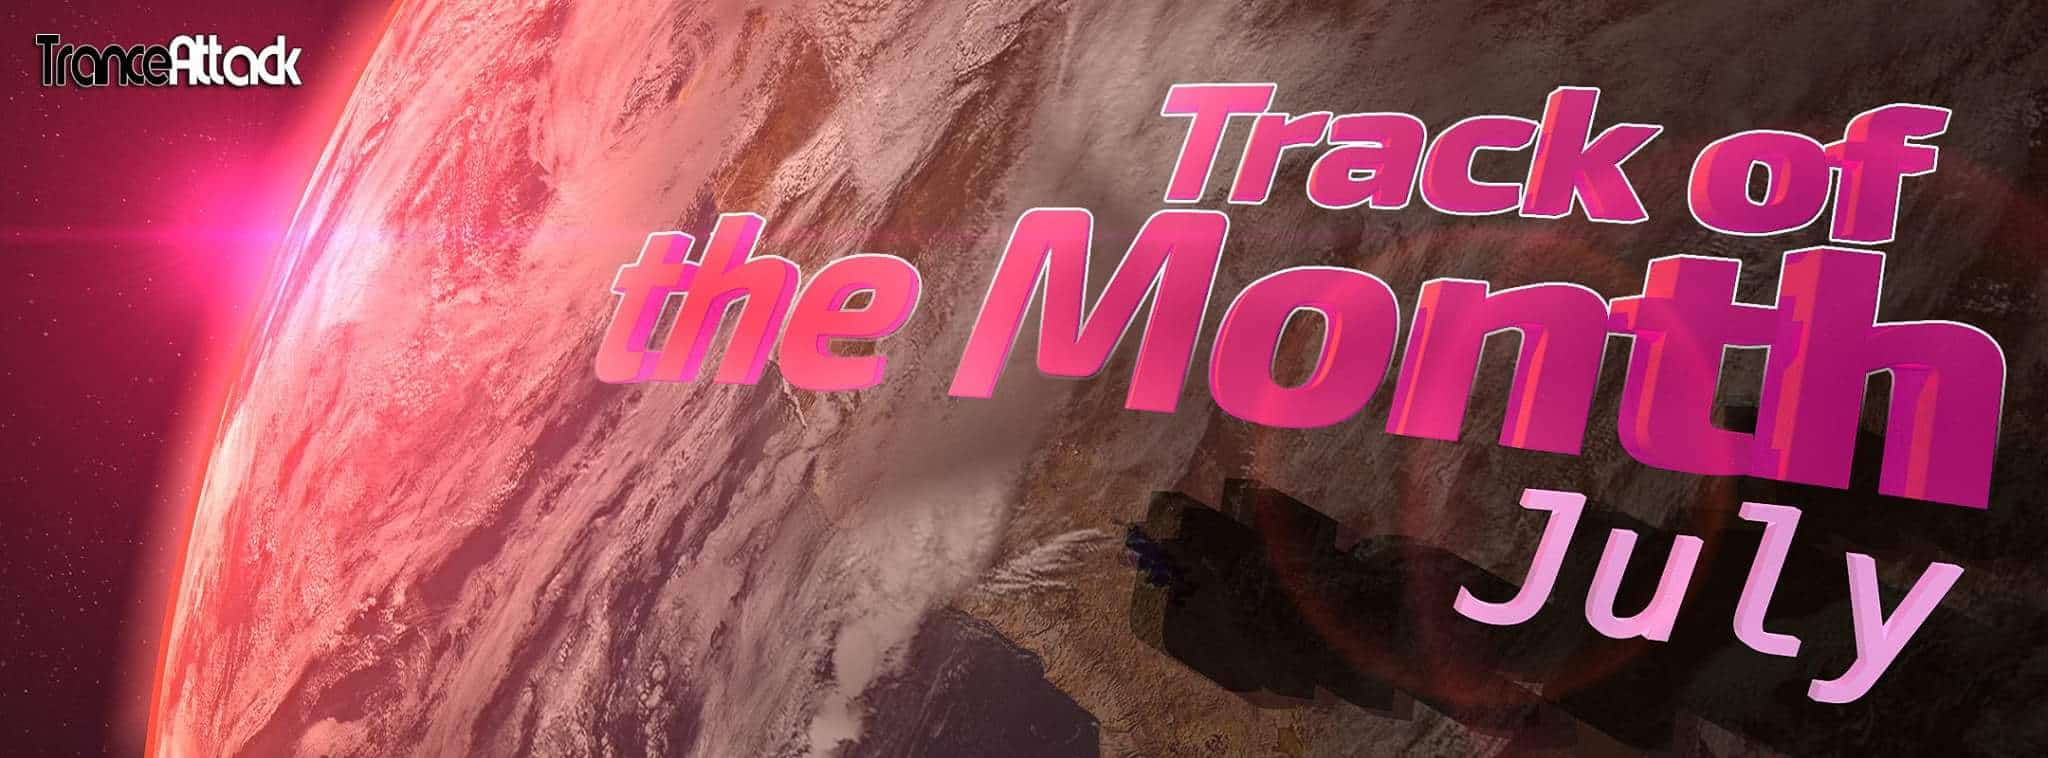 Voting: Track Of The Month July